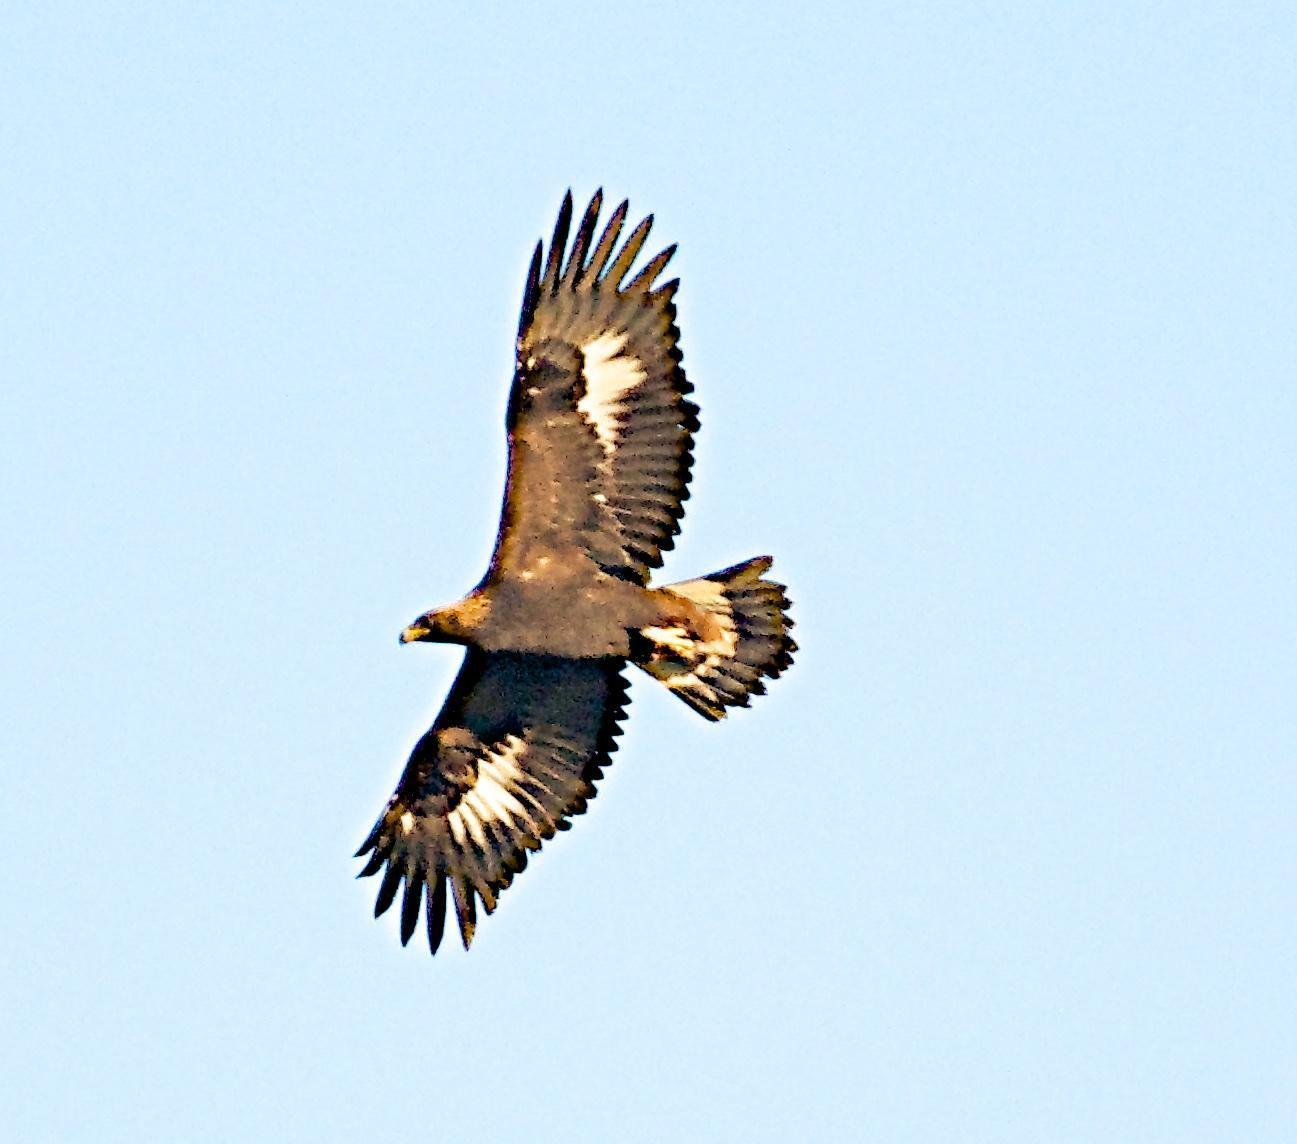 Golden Eagle Photo by Brian Avent